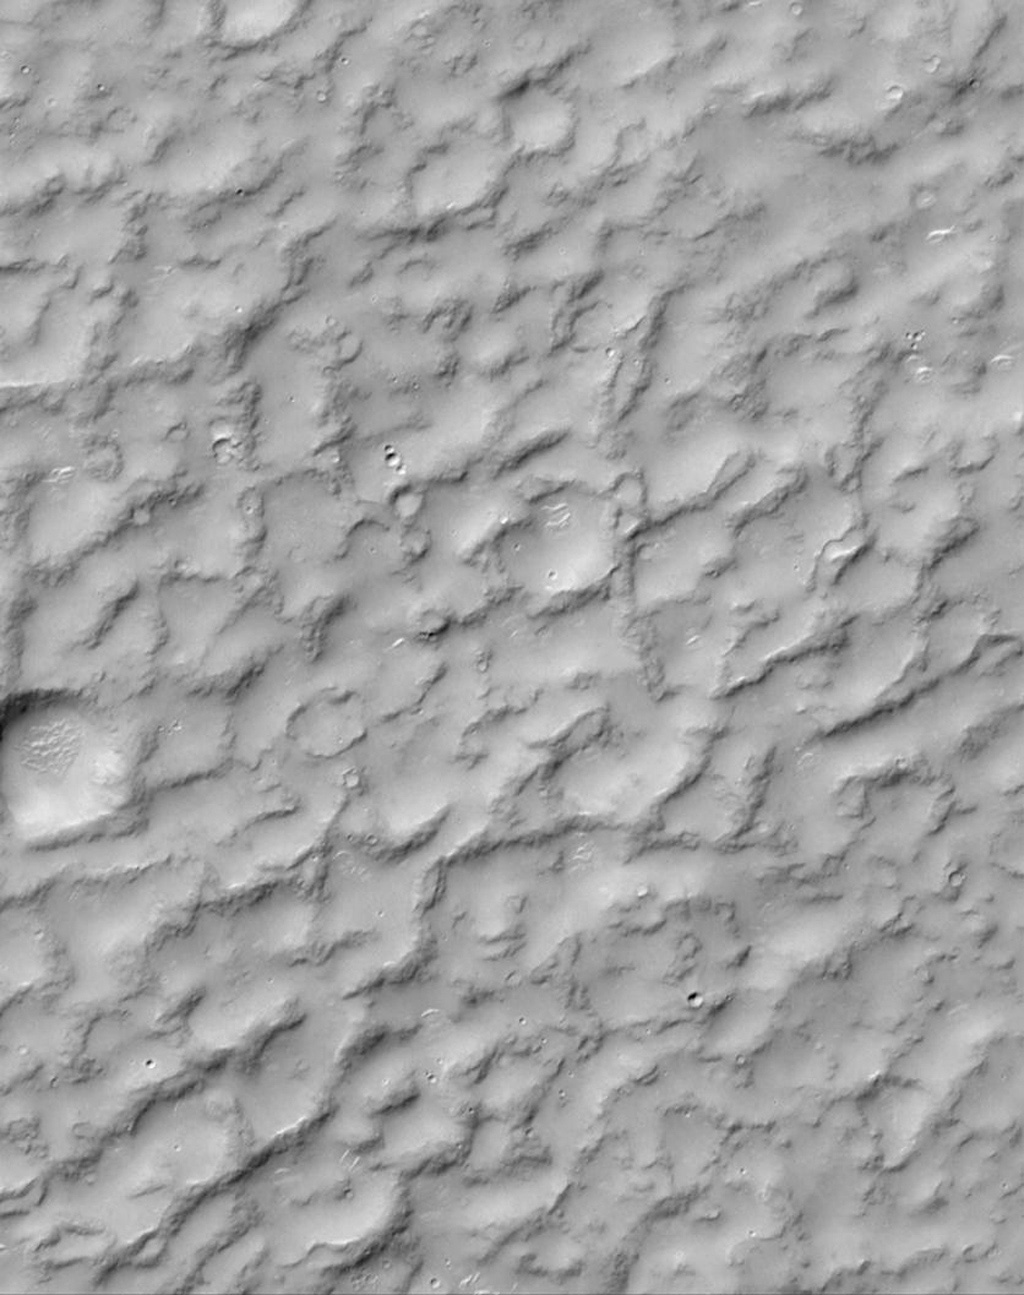 NASA's Mars Global Surveyor shows rounded, rocky ridges separated by lowlands filled with sand or dust in a complex, ridged terrain in North Terra Cimmeria on Mars.